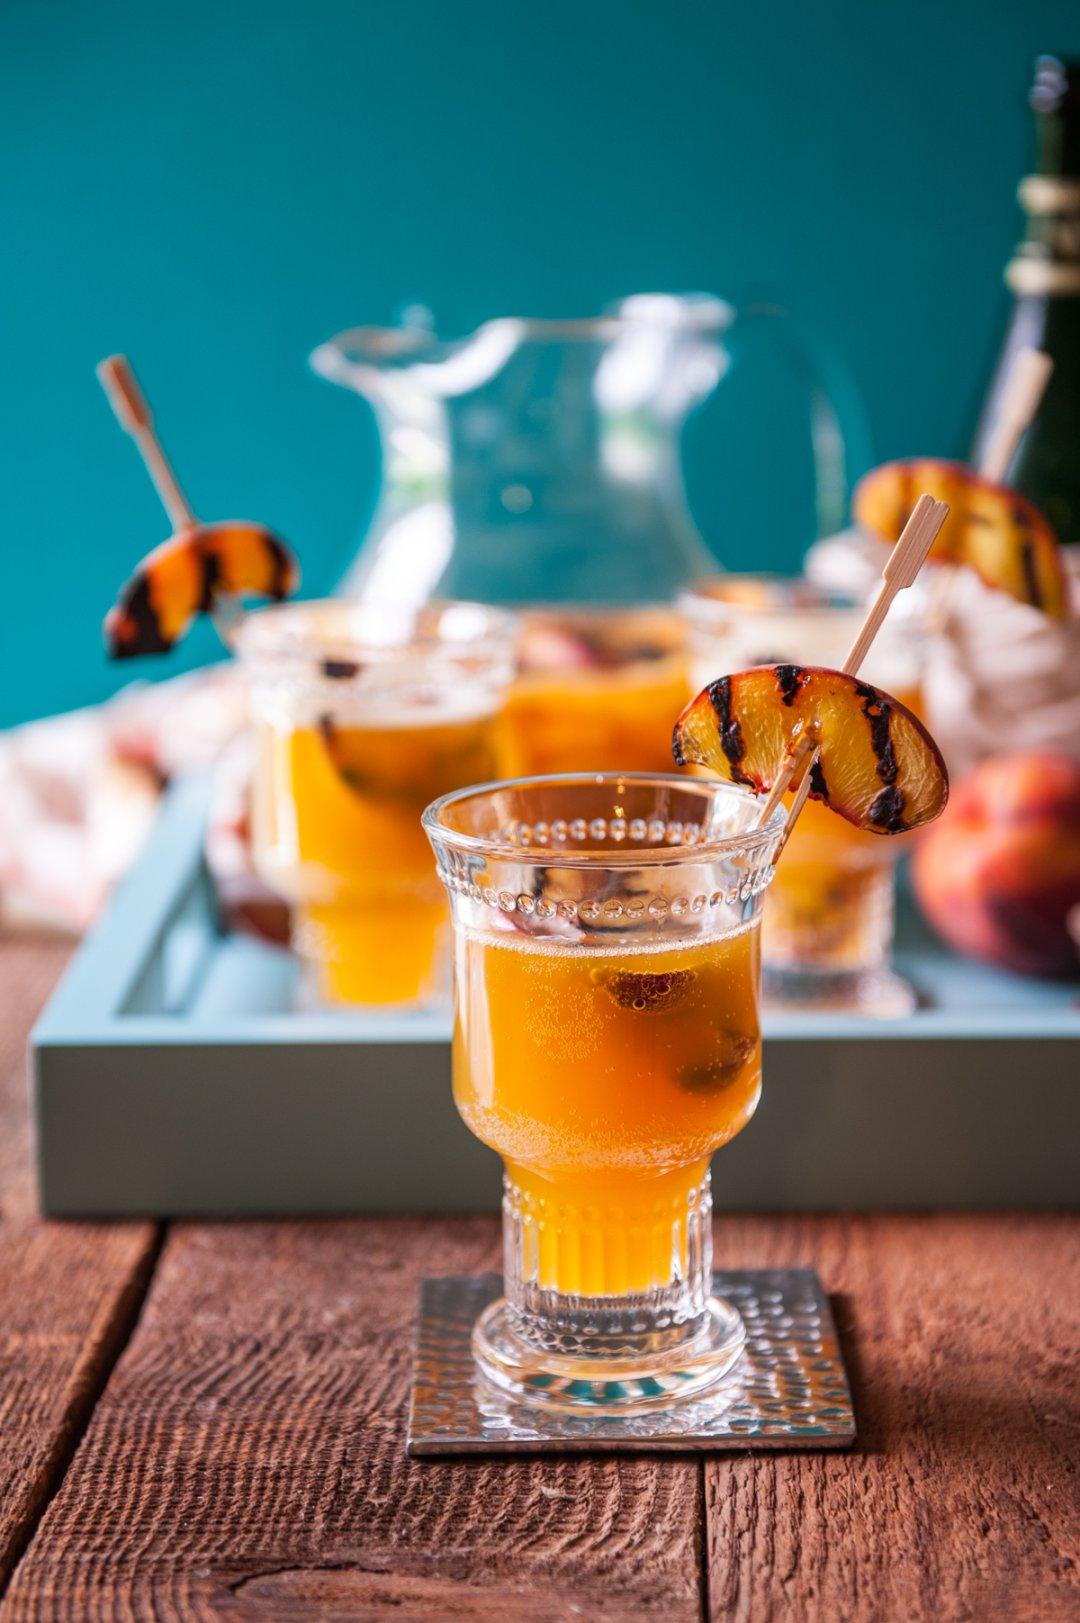 Peach sangria in serving glass on metal coaster on wood table